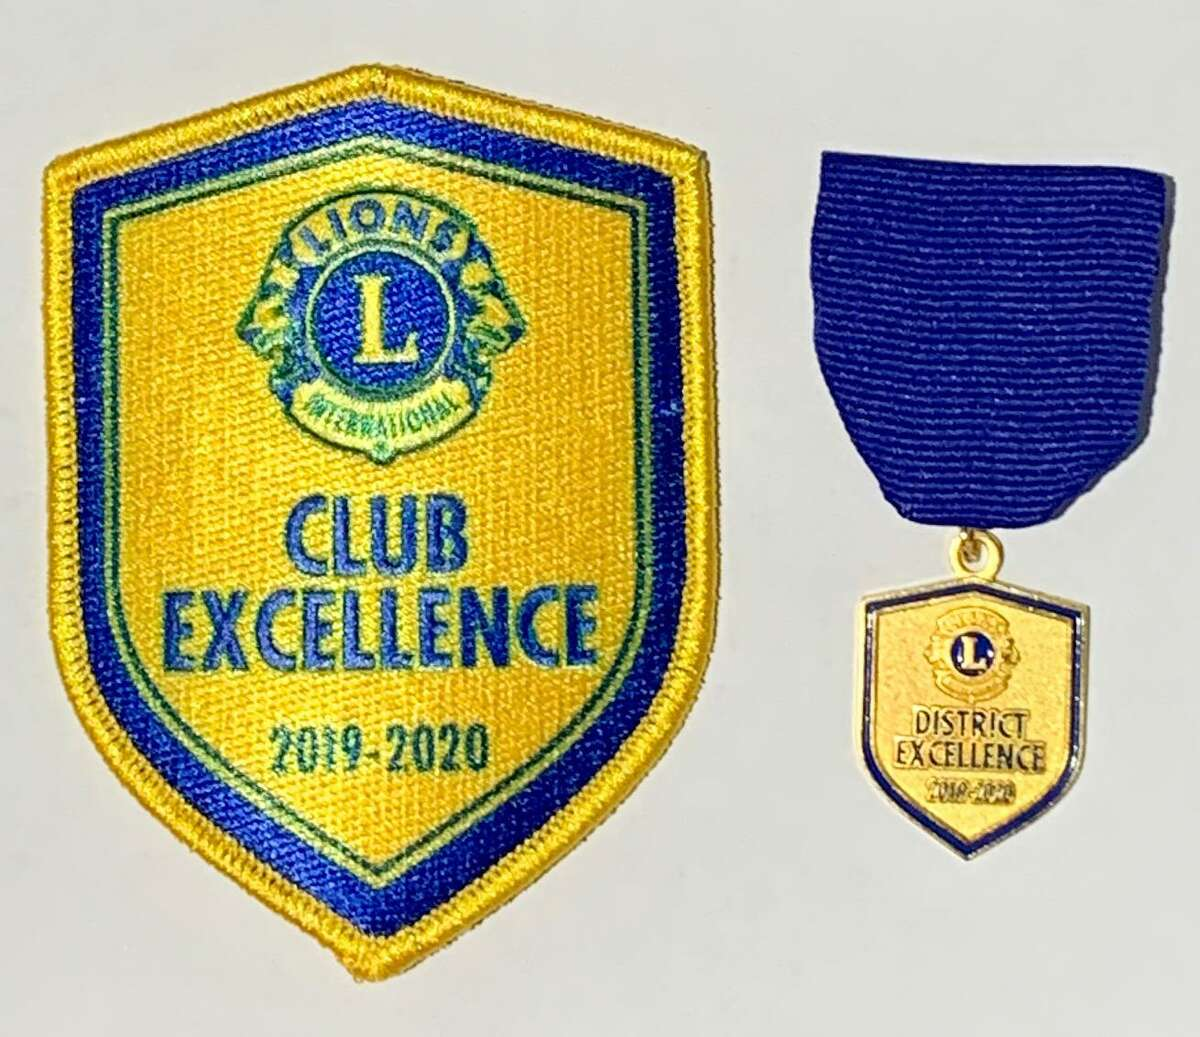 The Lions Club of Barkhamsted, founded in 1966 by Winsted Lions Club, was recently awarded the Lions Clubs International District Club Excellence Award for 2019-2020.